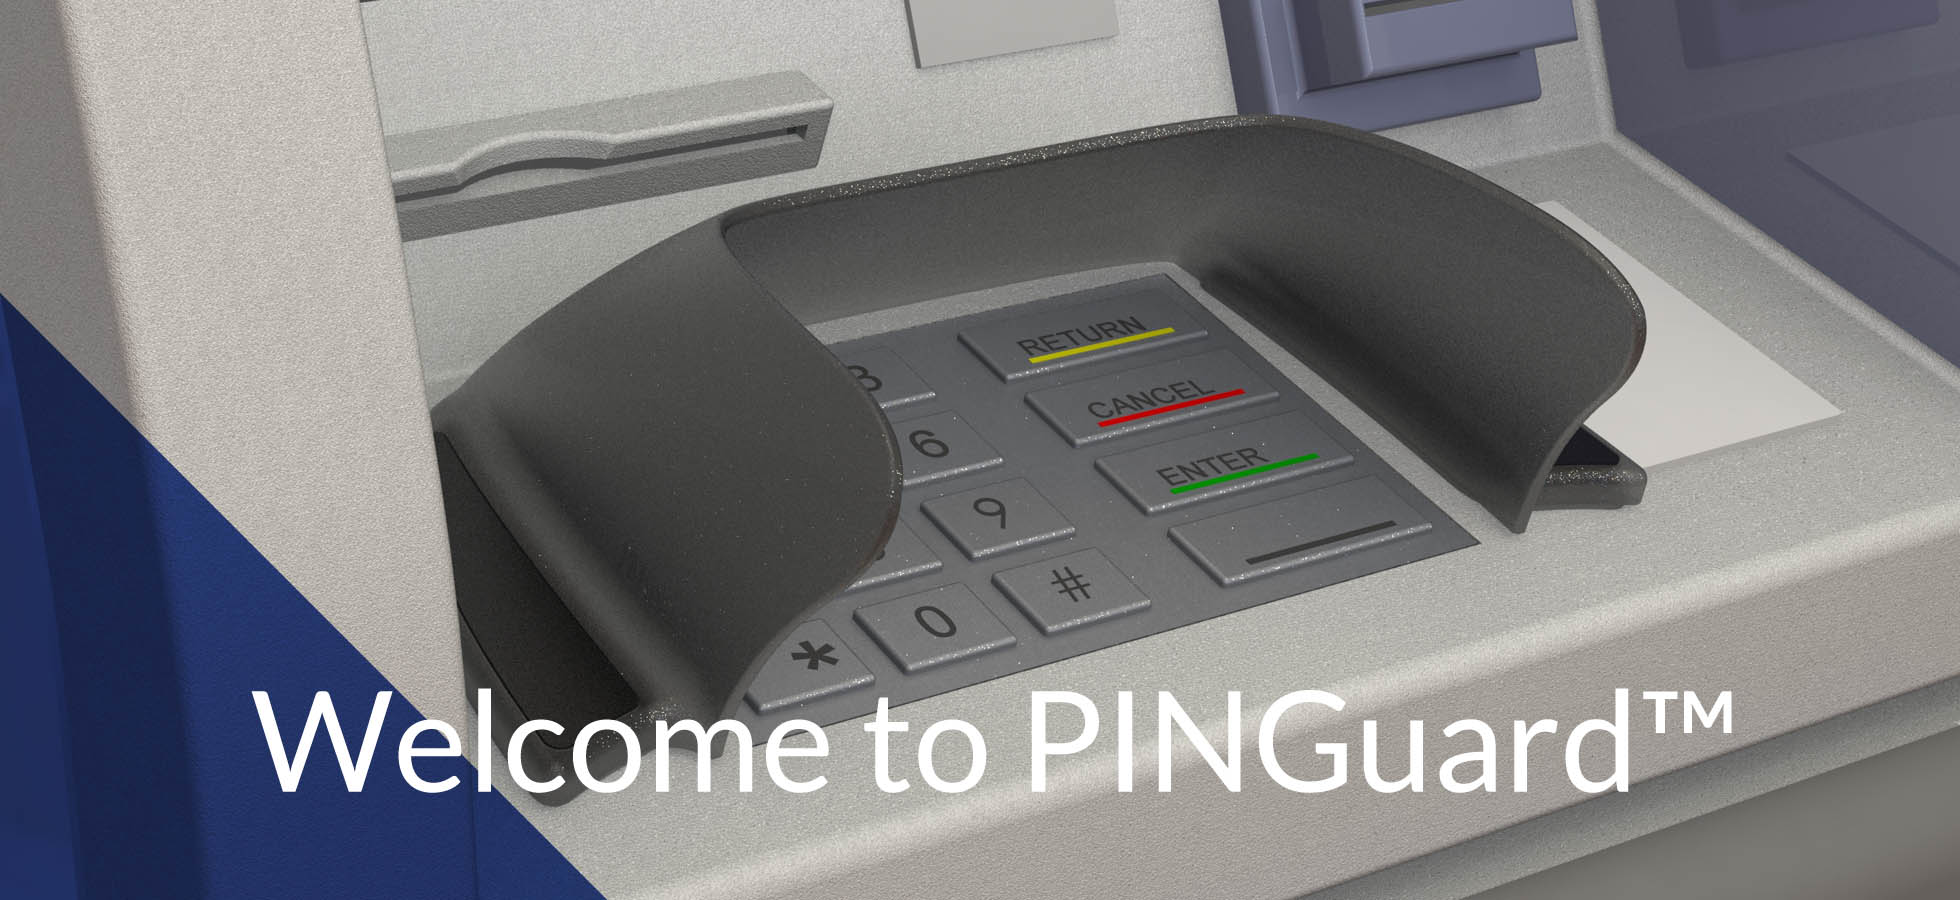 PinGuard pin shields for complete pin protection